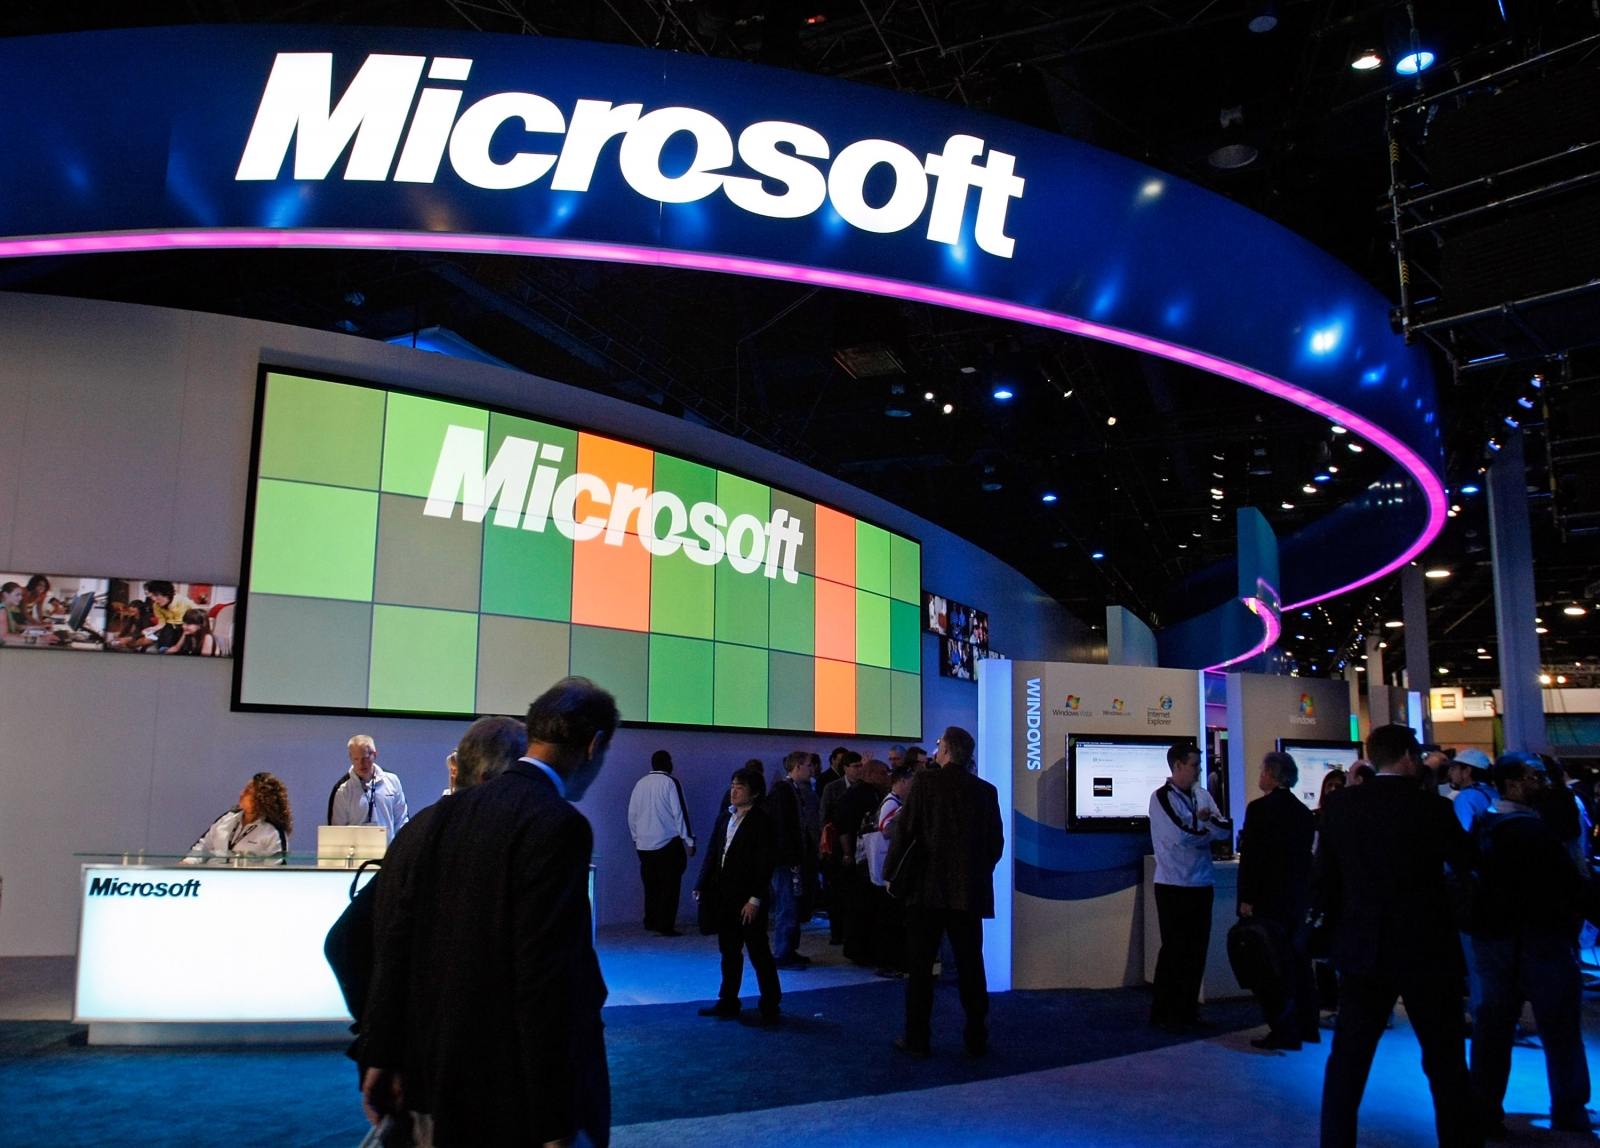 Microsoft sells $19.75 billion of bonds